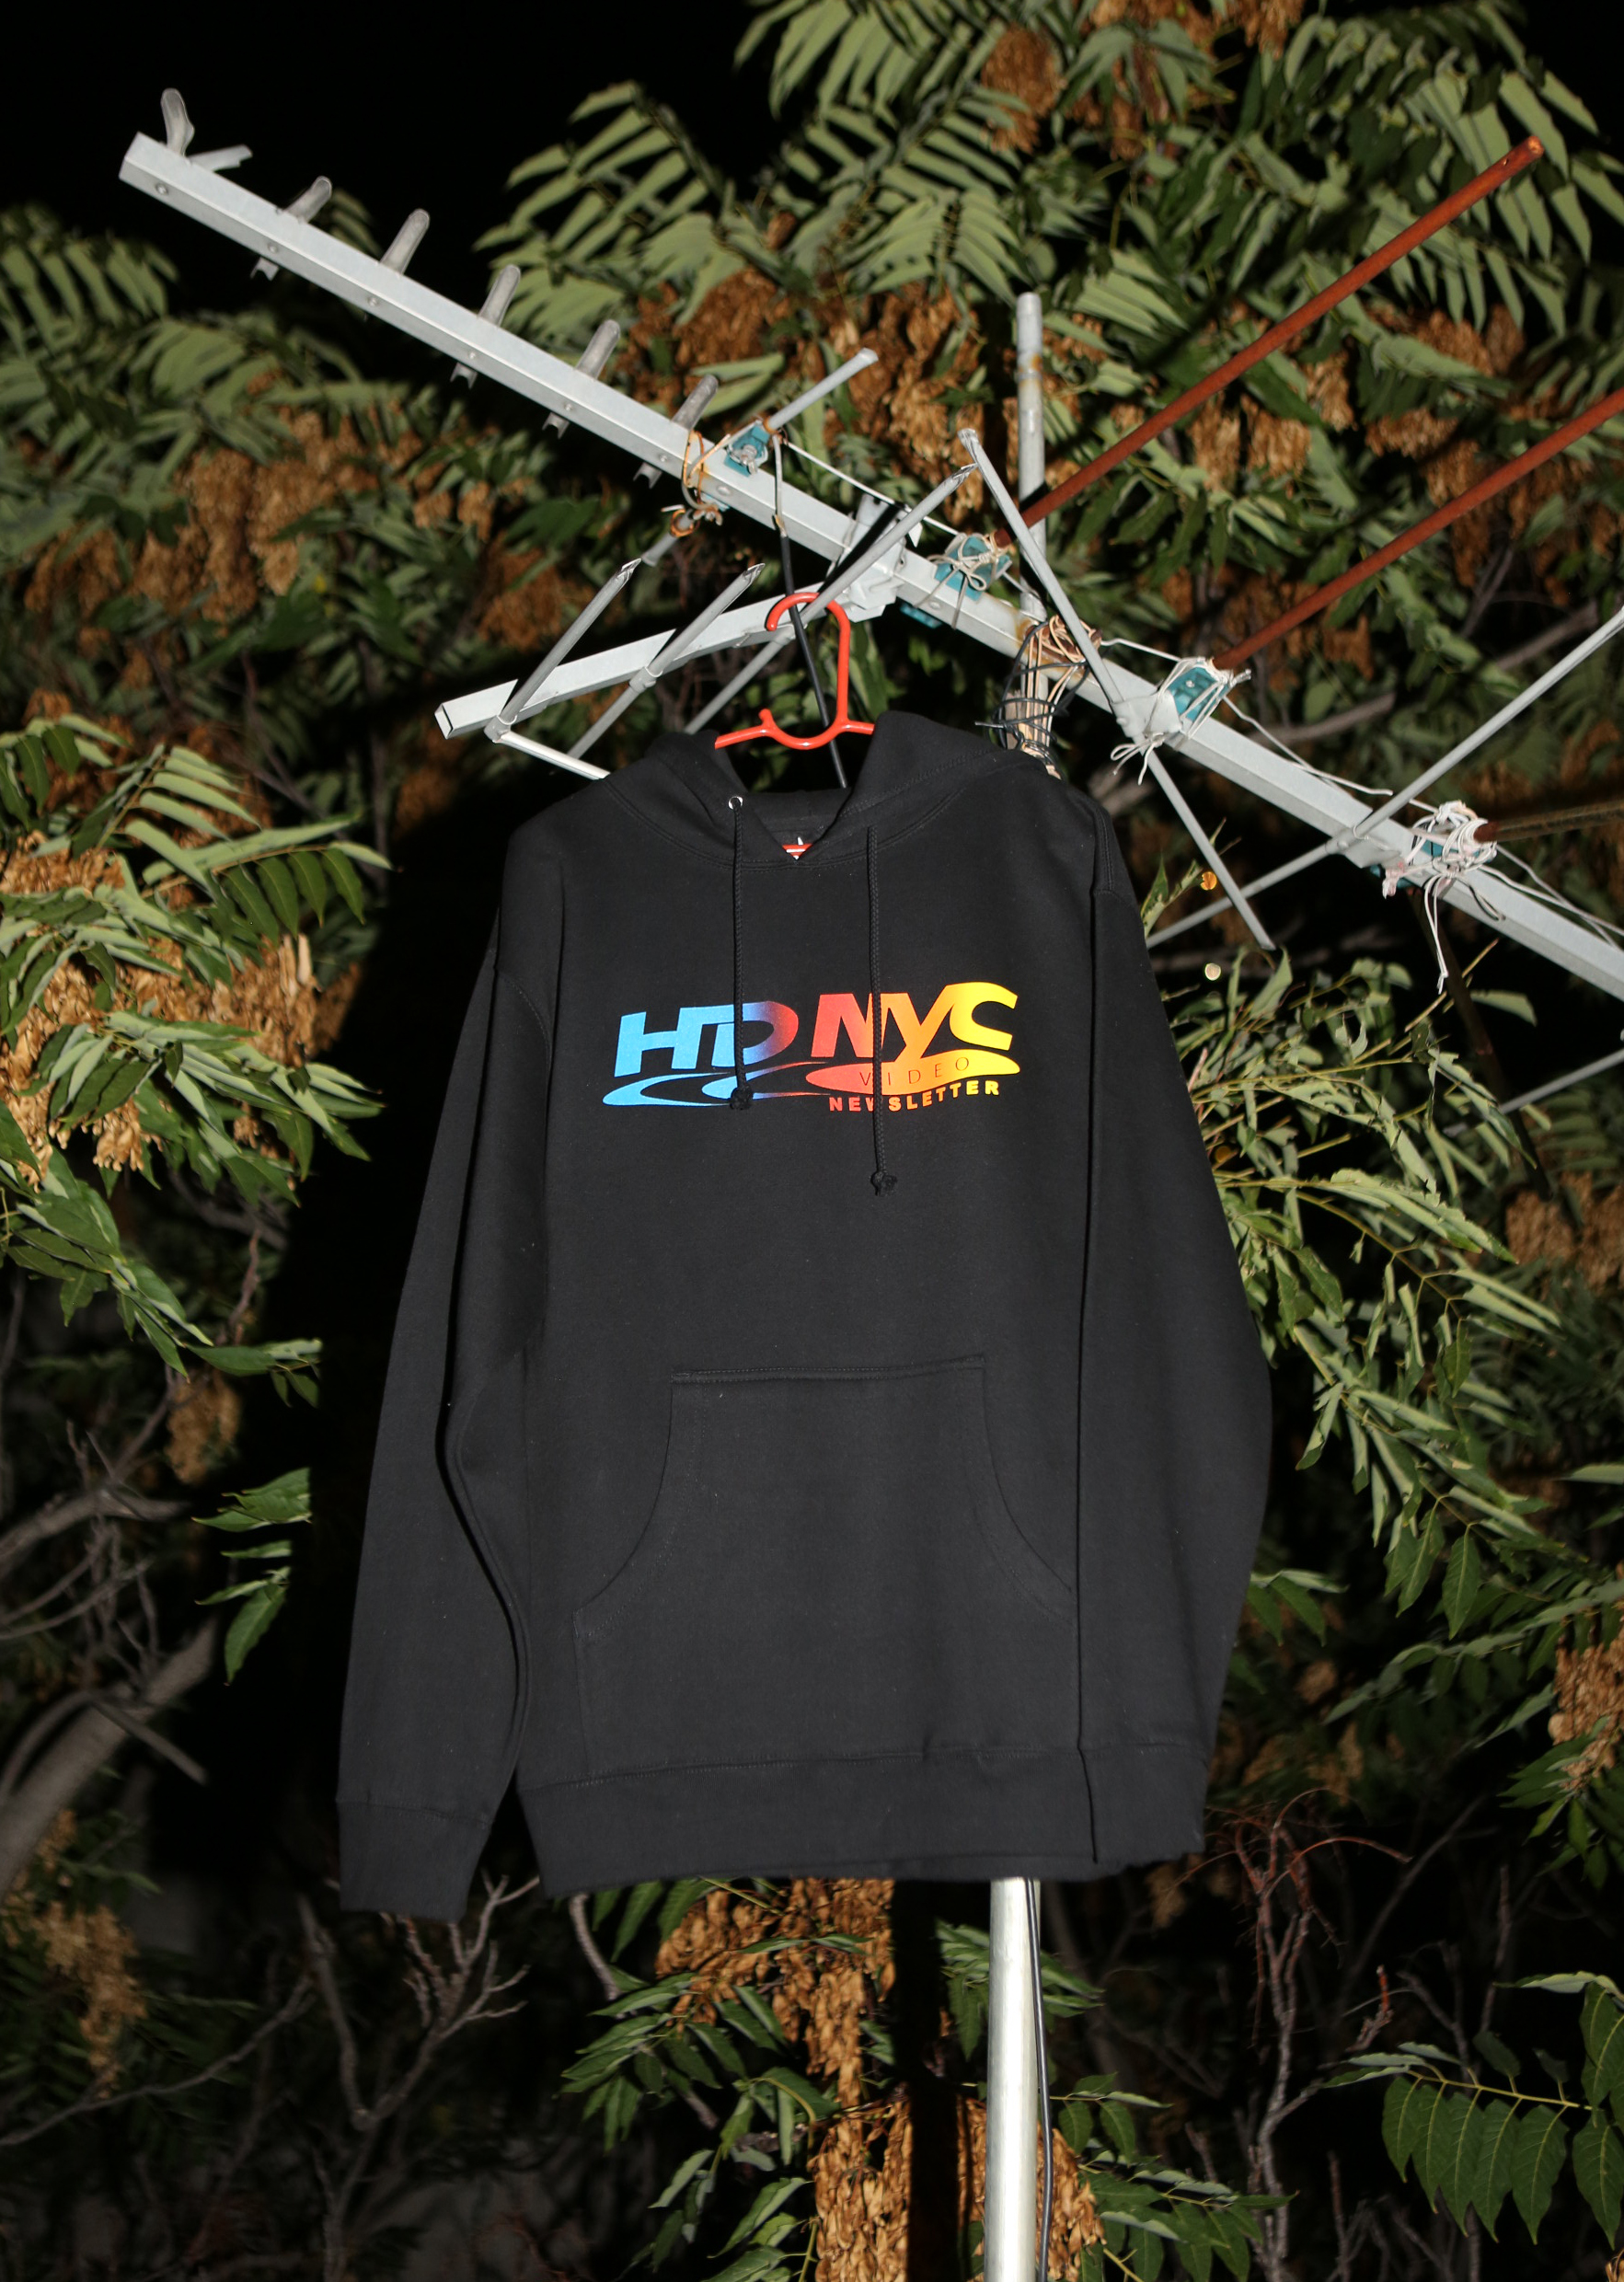 hd nyc video newsletter black hoodie